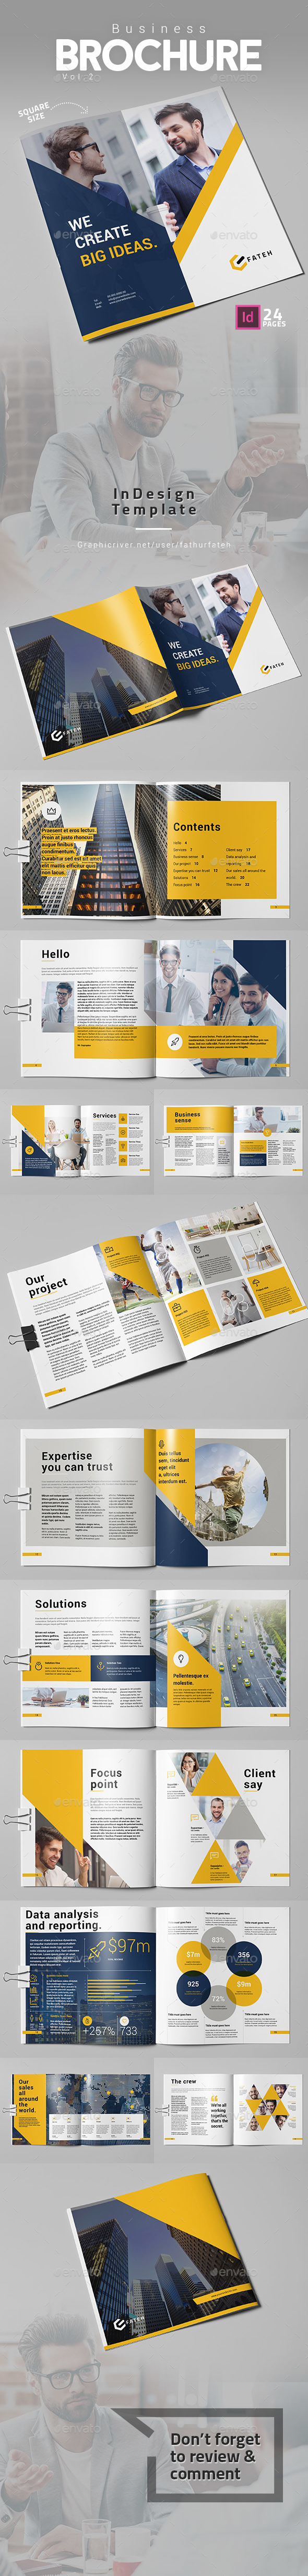 Business Brochure Vol.2 Square - Corporate Brochures